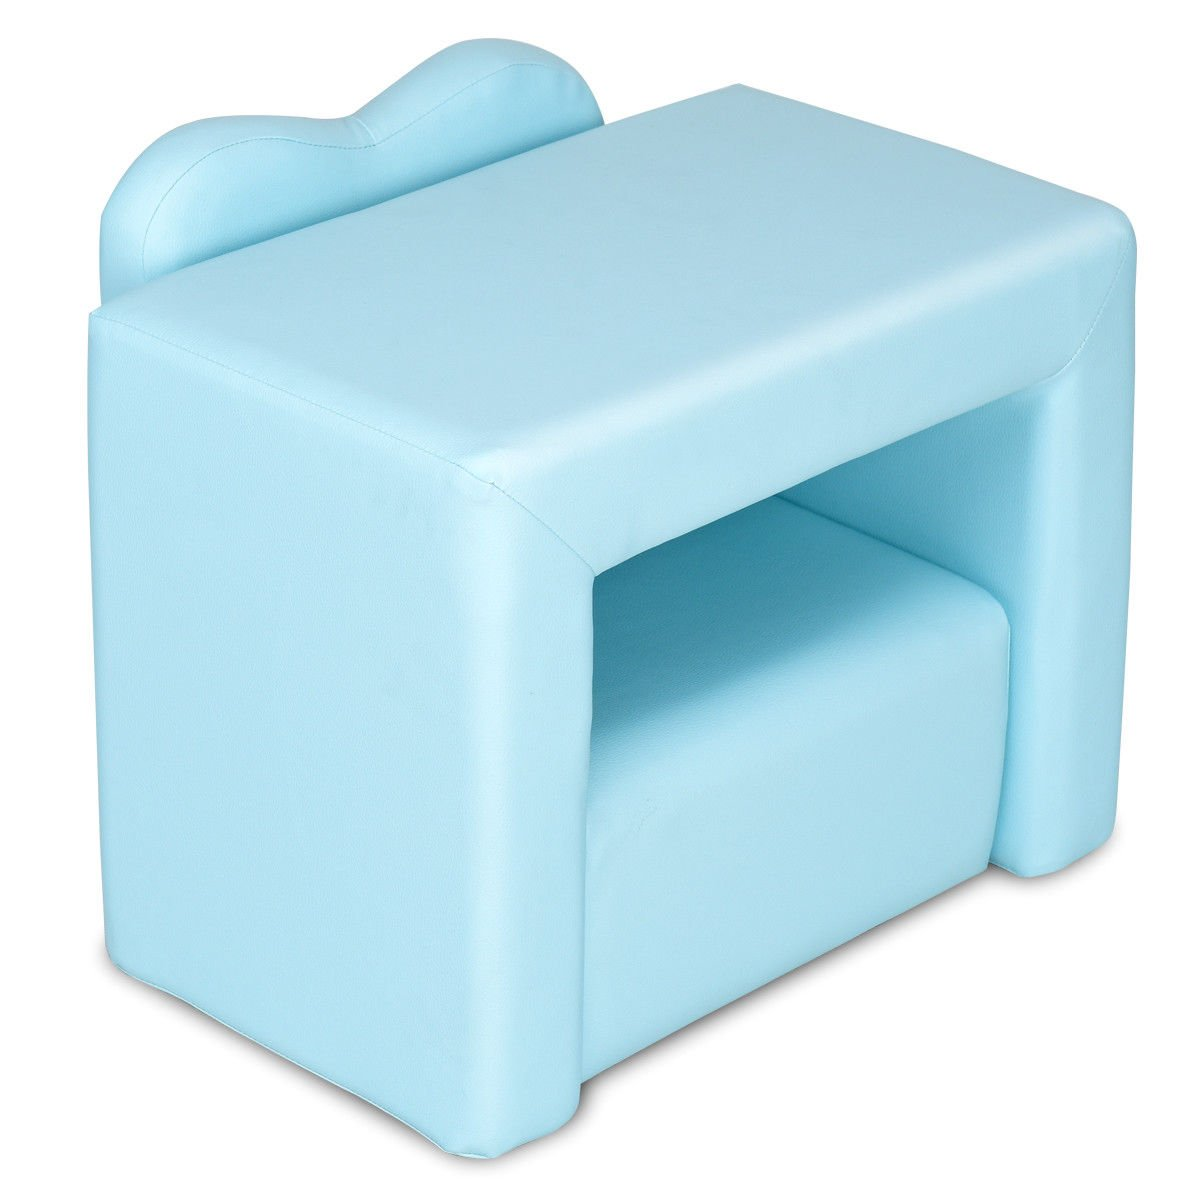 Blue Multi Functional Kids PVC Leather Sofa Table Chair Set Folded Armchair